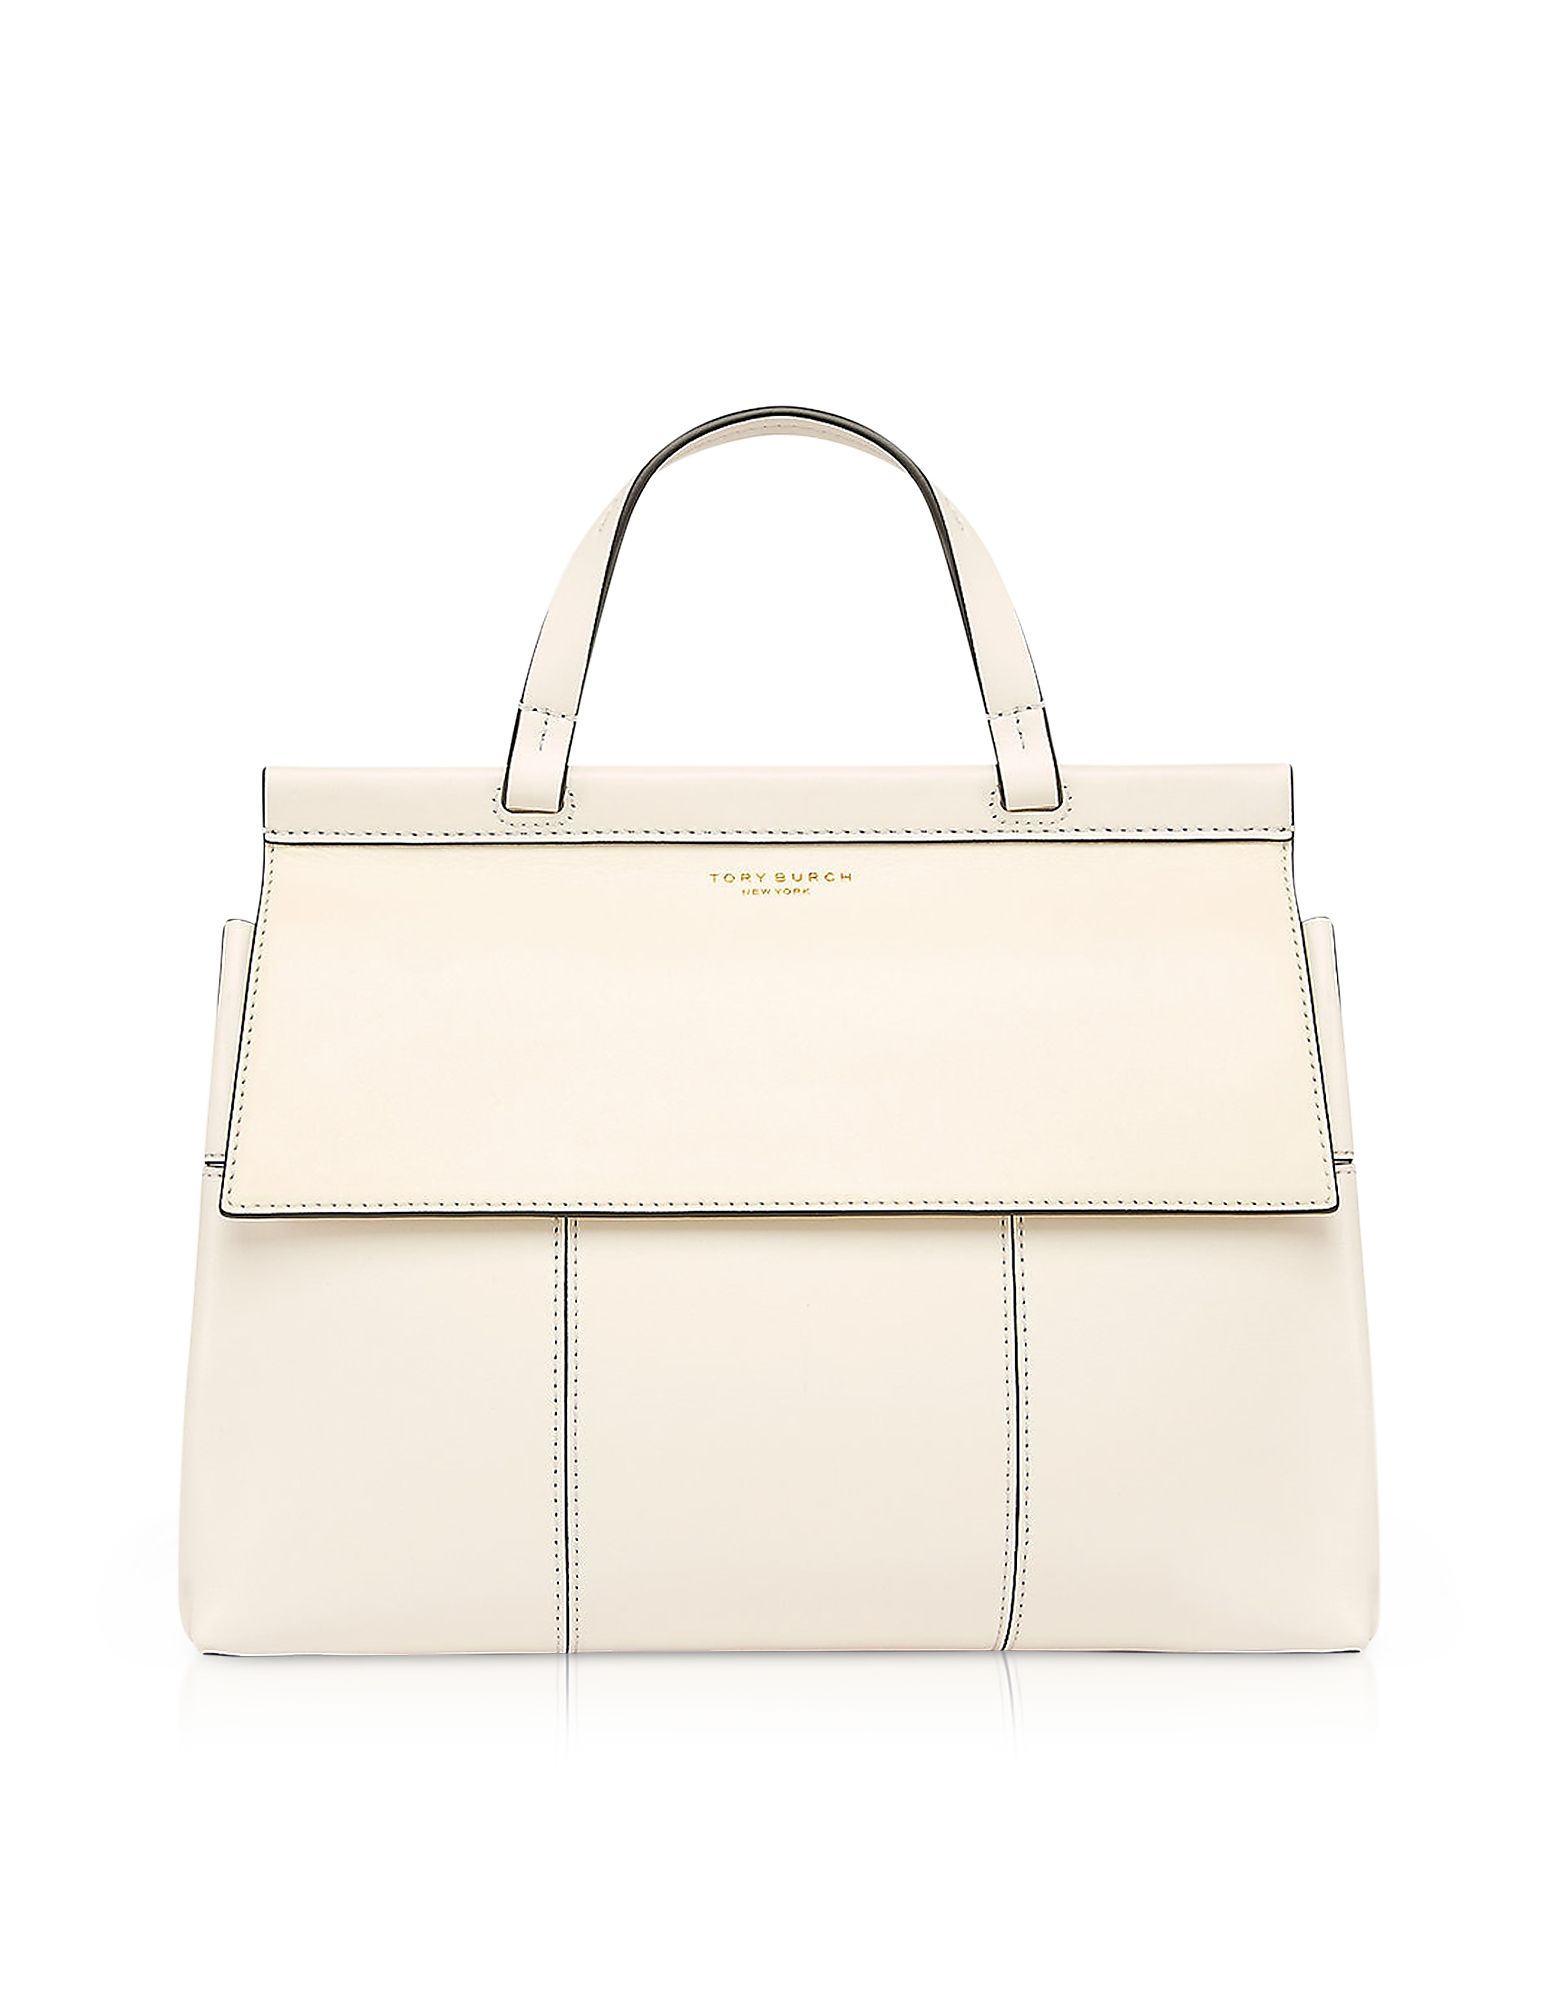 Tory Burch Handbags, Block-T New Ivory and Royal Navy Leather Top Handle Satchel Bag